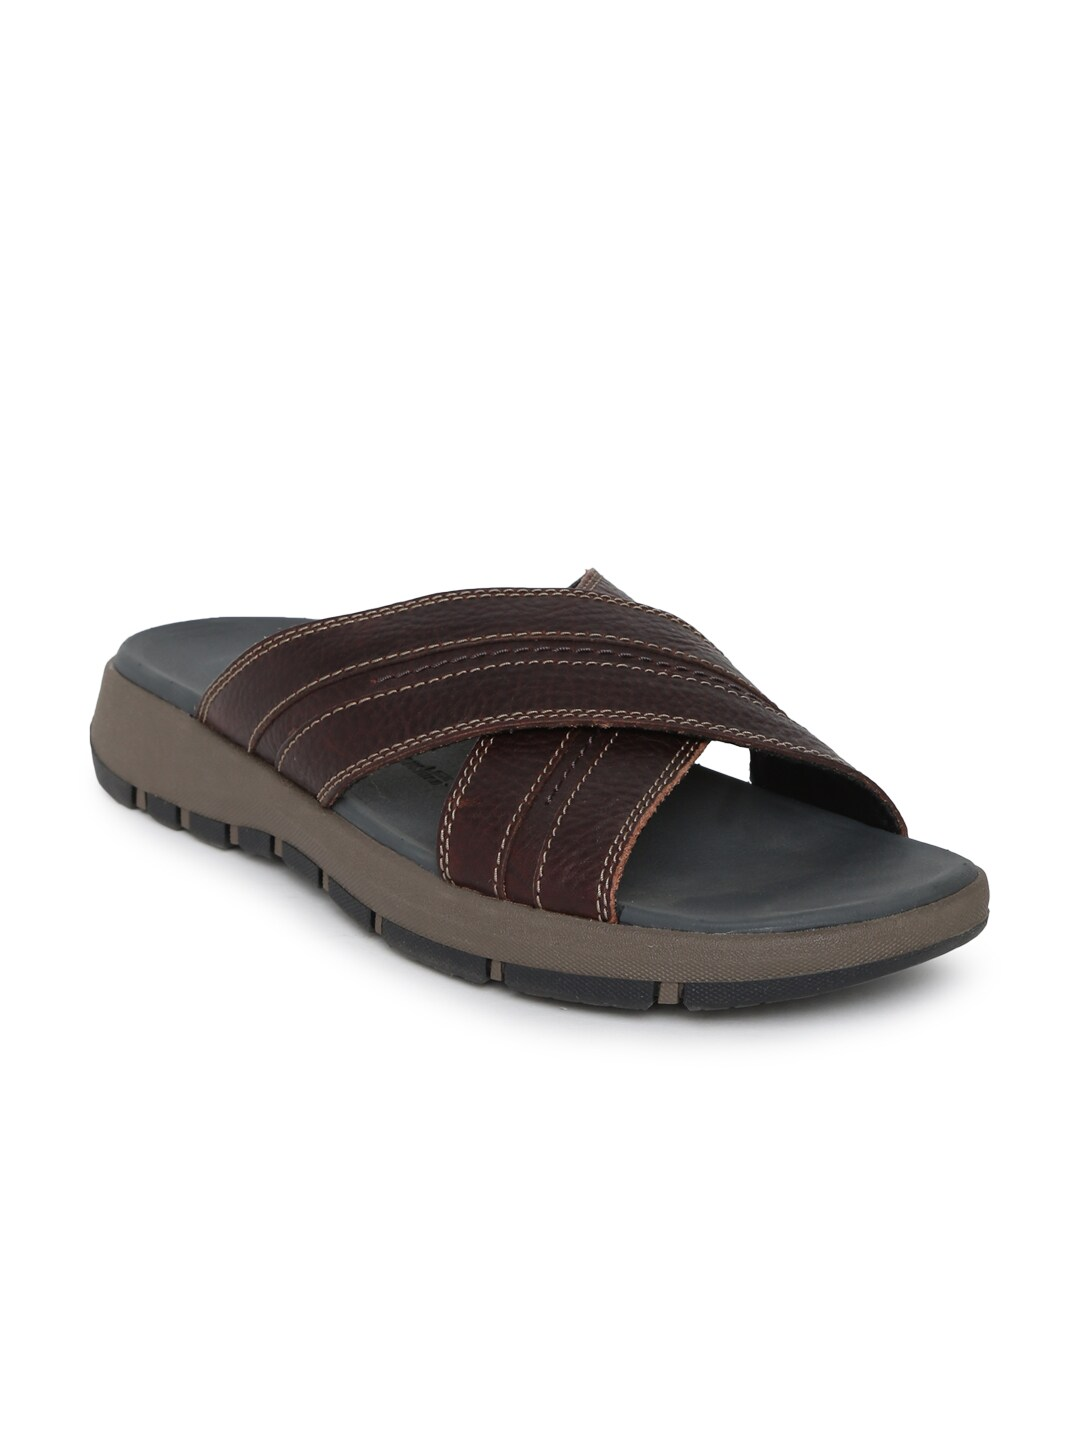 0ffcf108c56b 3 Sandals - Buy 3 Sandals online in India